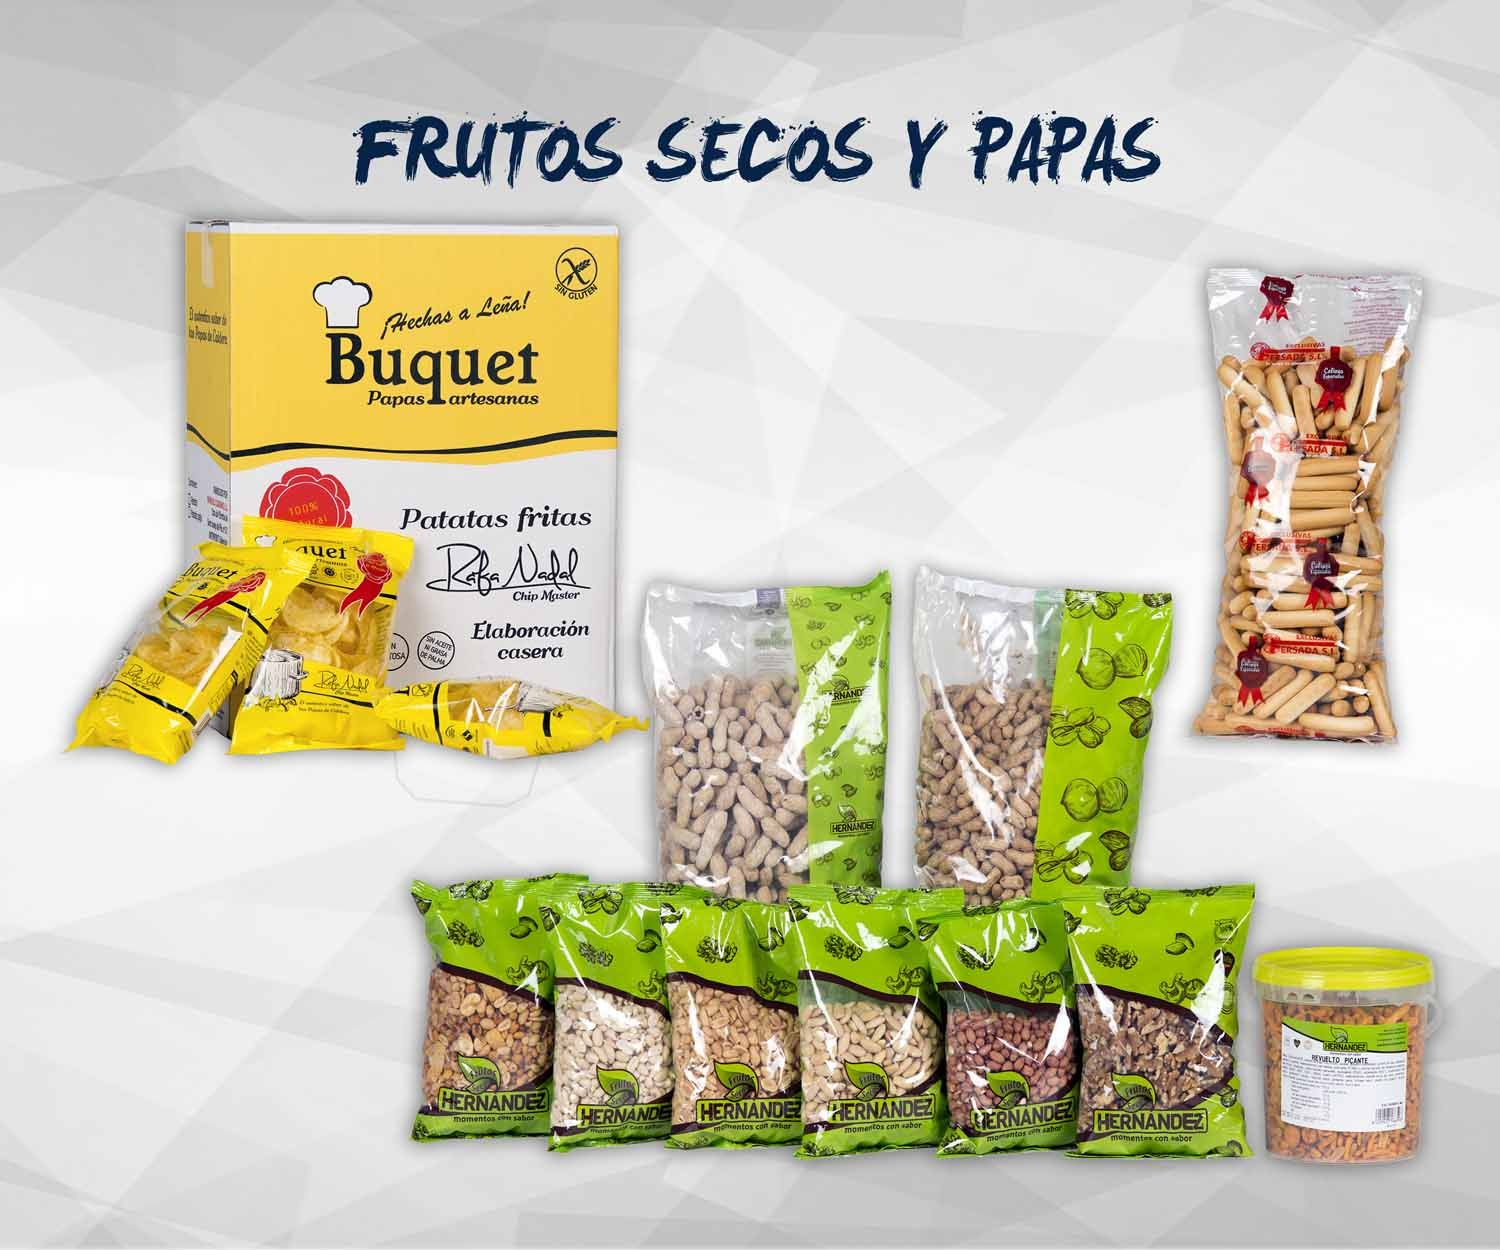 Frutos secos y papas: Productos de Exclusivas San Luis }}